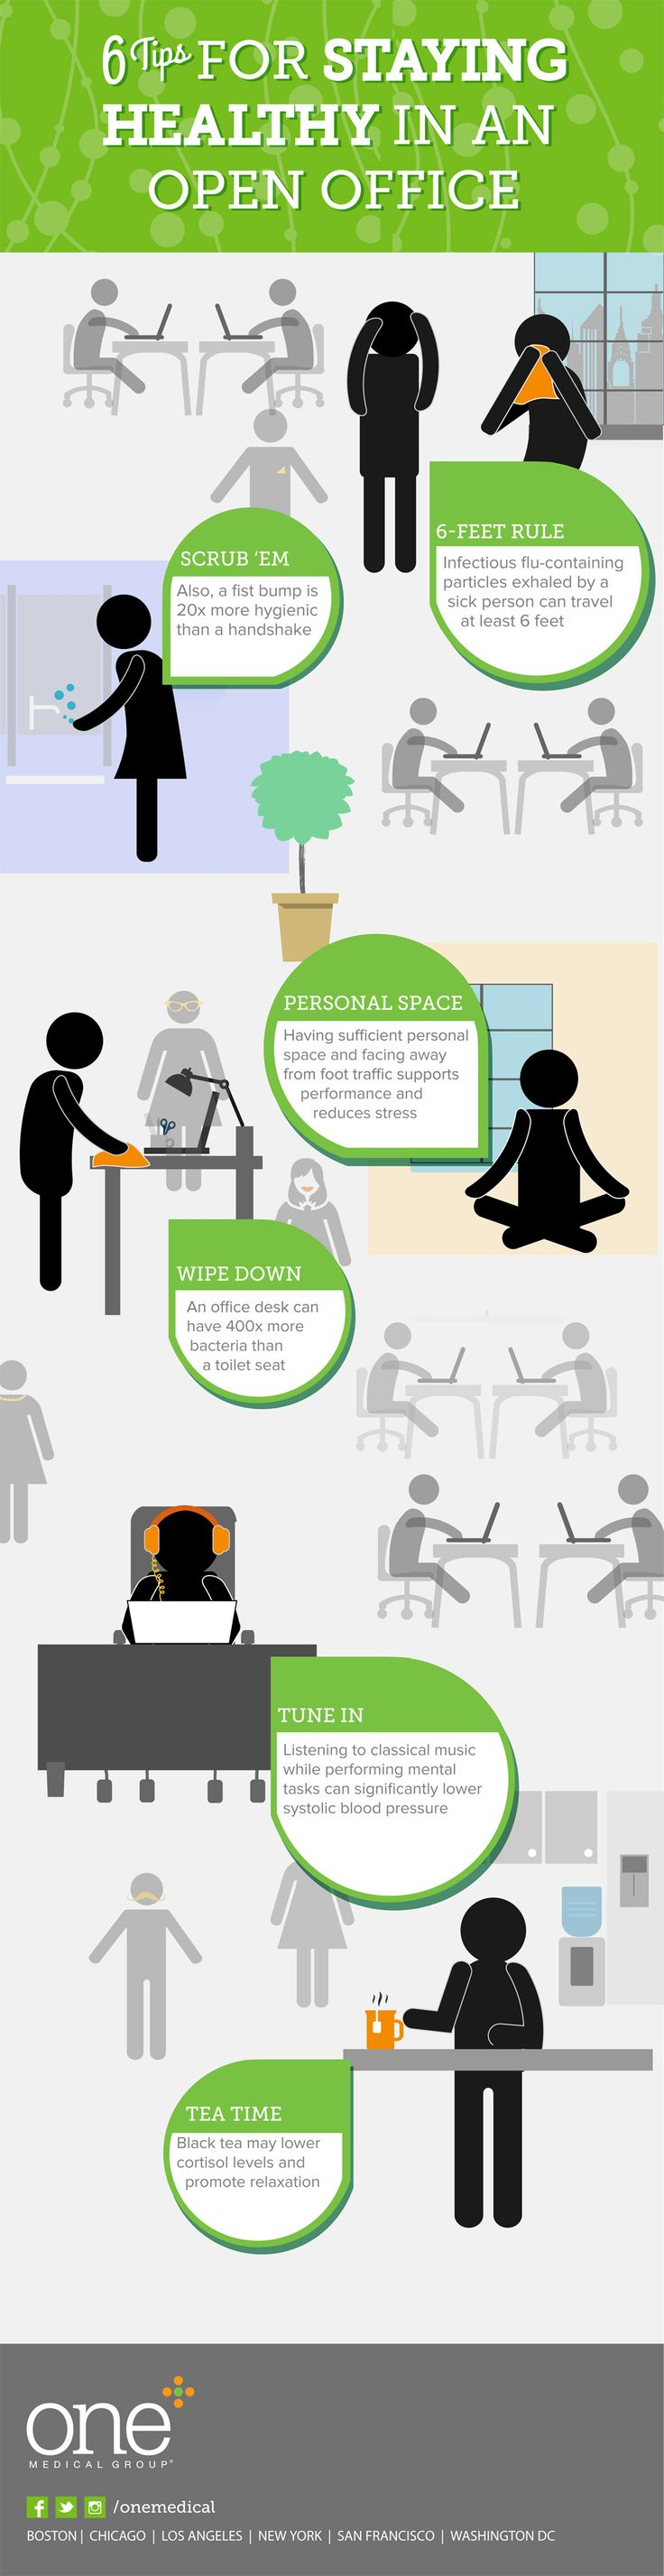 An open office should help foster ideas not germs. Check out our latest infographic on staying healthy in an open office environment. http://www.onemedical.com/blog/live-well/healthy-open-office/?utm_medium=social&utm_source=pinterest&utm_campaign=org